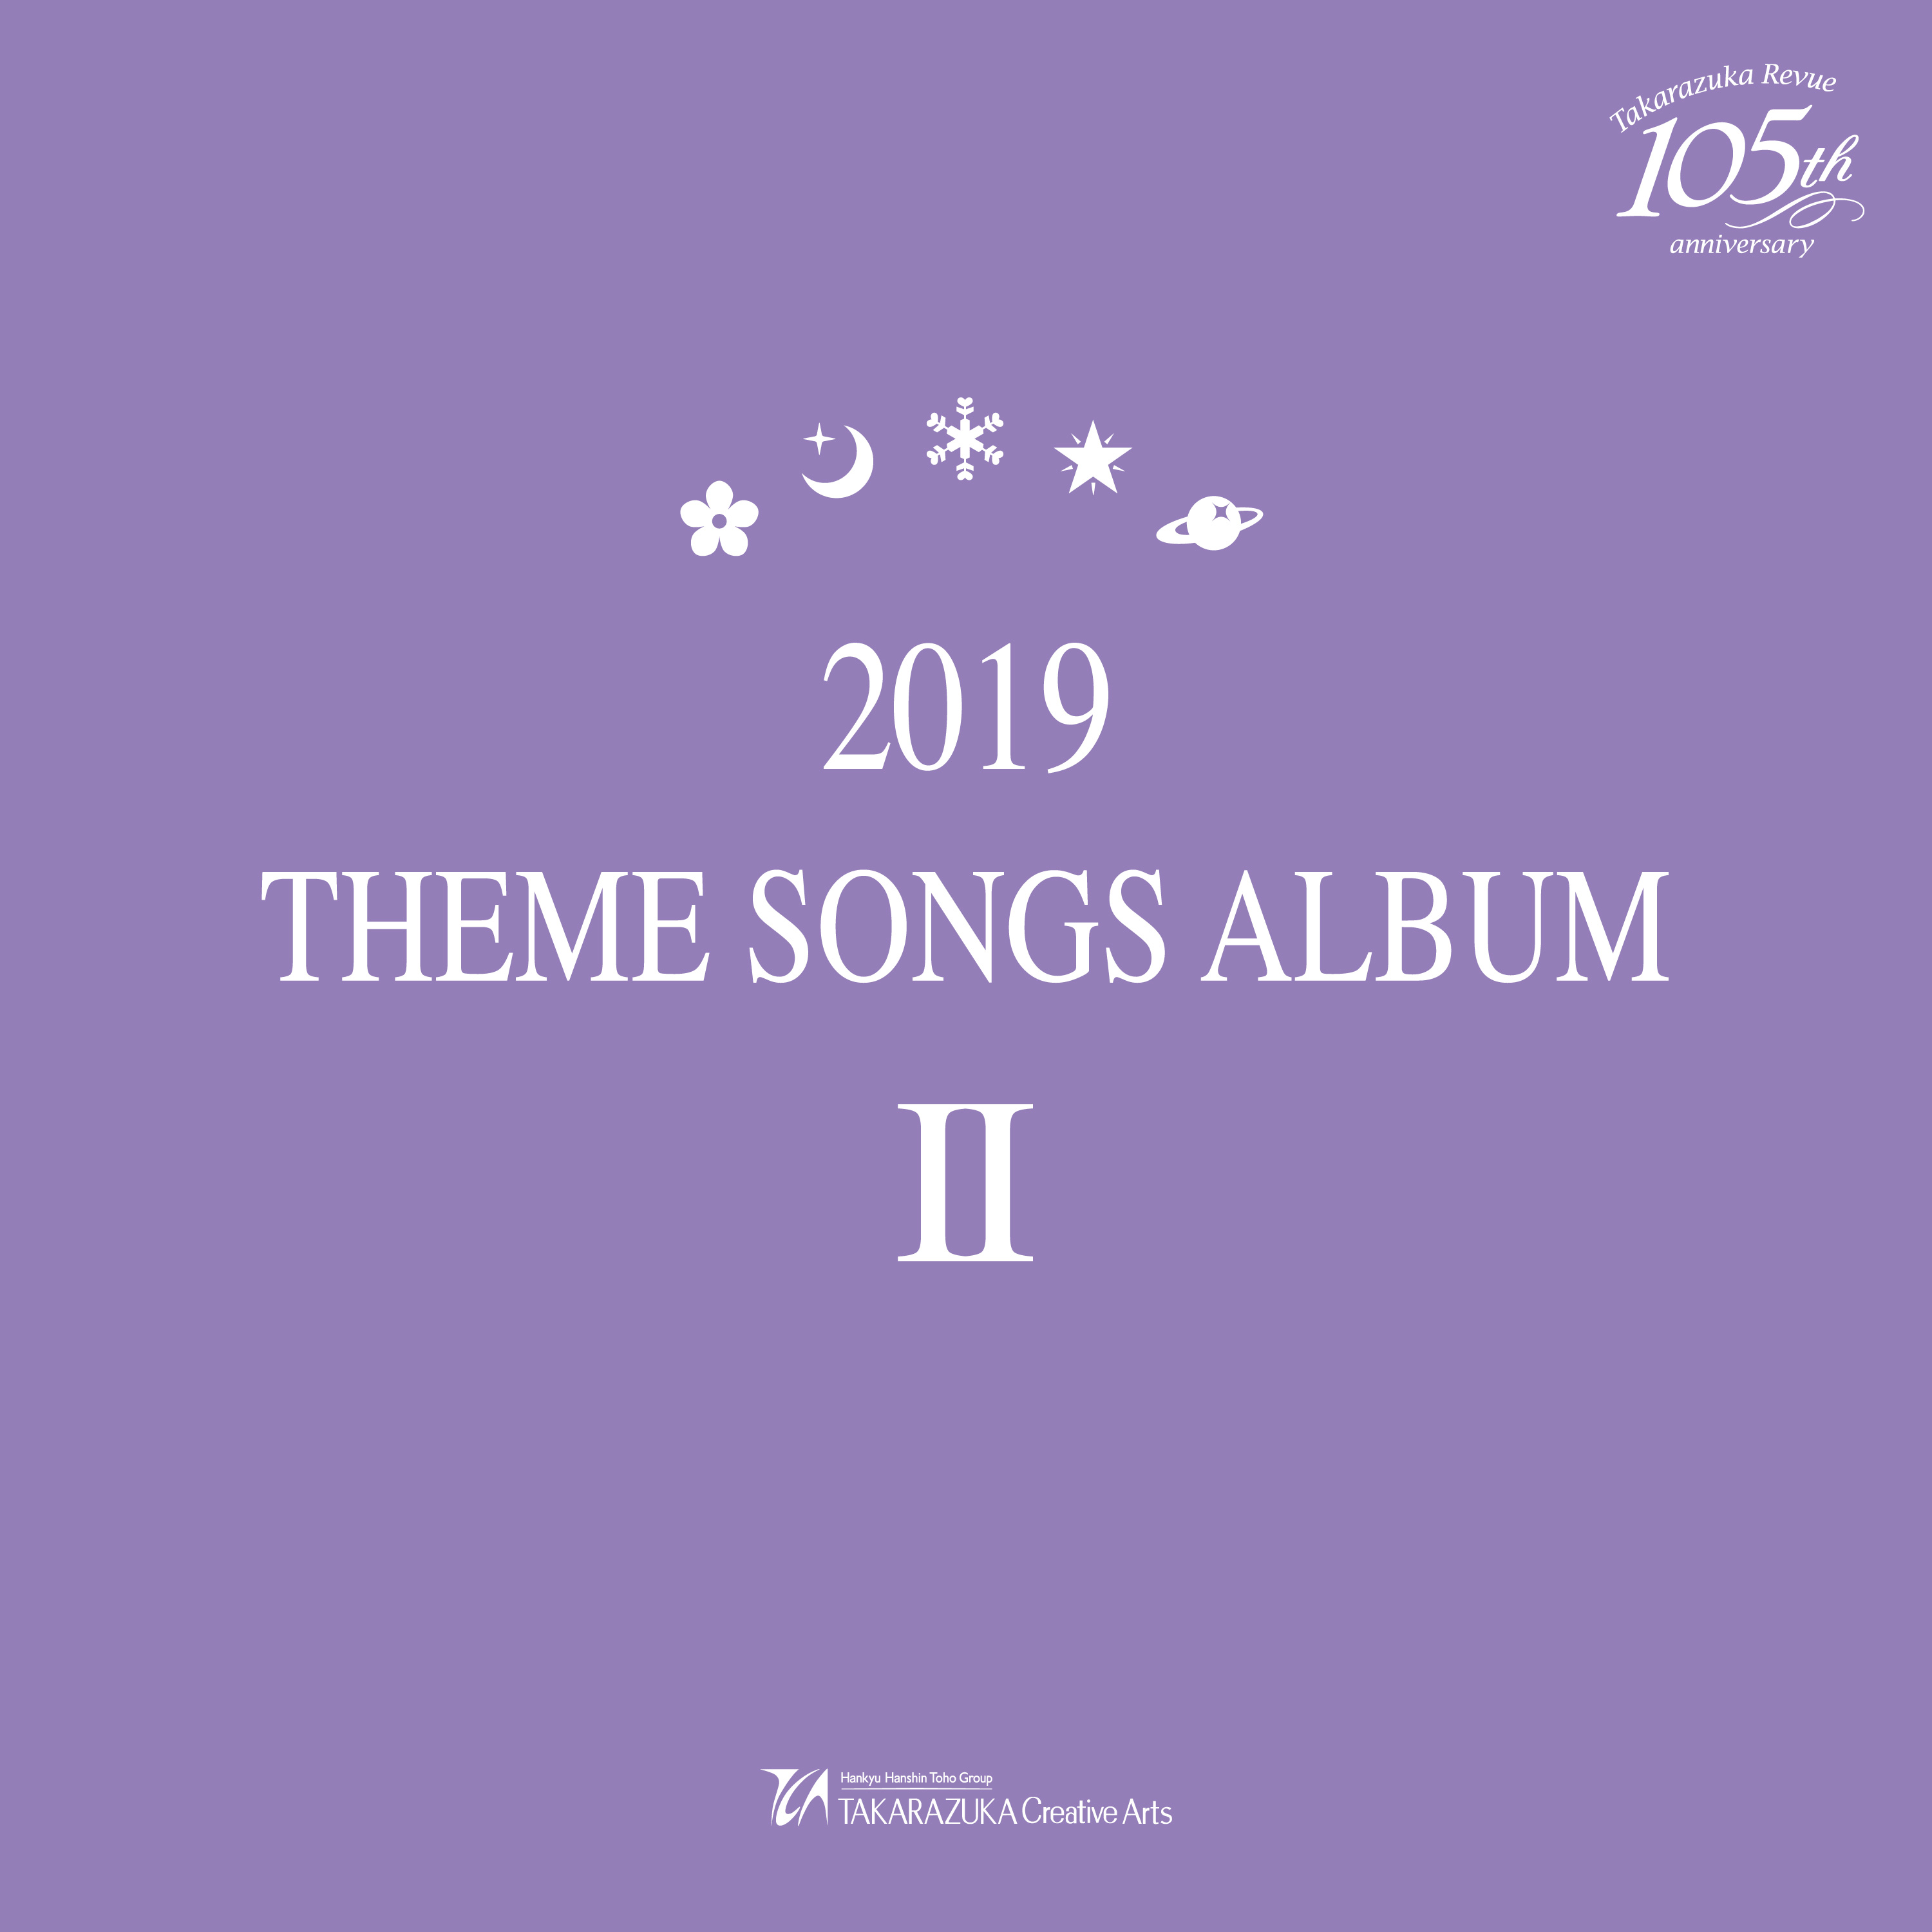 2019 THEME SONGS ALBUM II